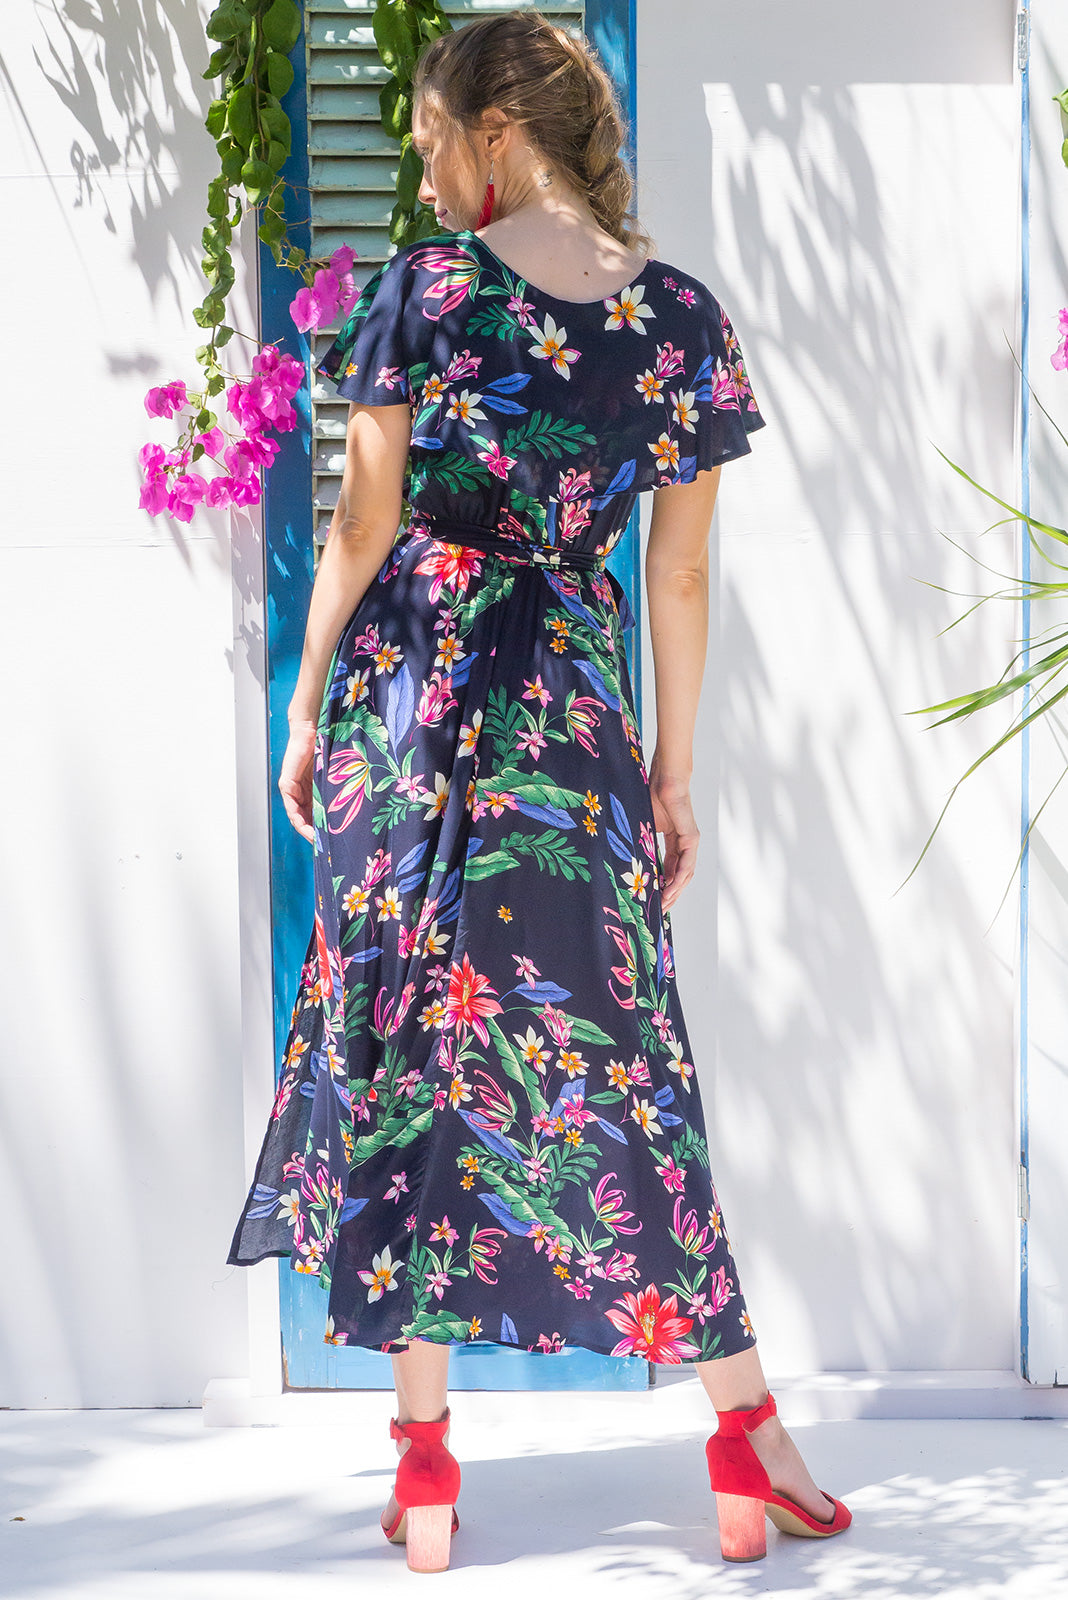 Rita Rio Vista Ink Maxi Wrap Dress with a full frill around the neck and sleeve in a gorgeous bright navy floral print on rayon